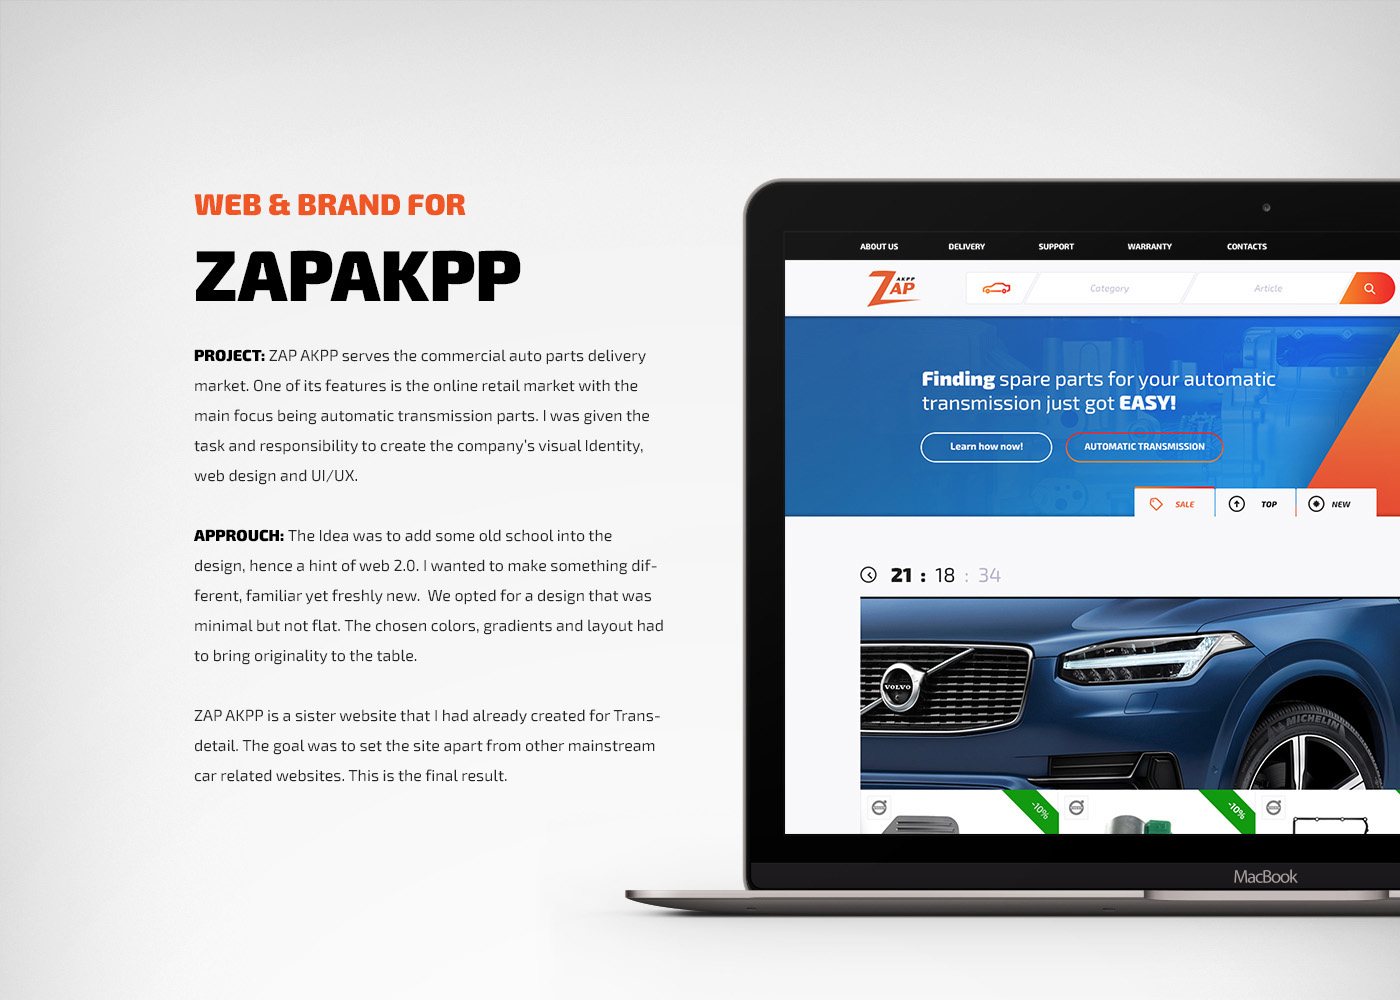 Web & Brand for Zap on Behance